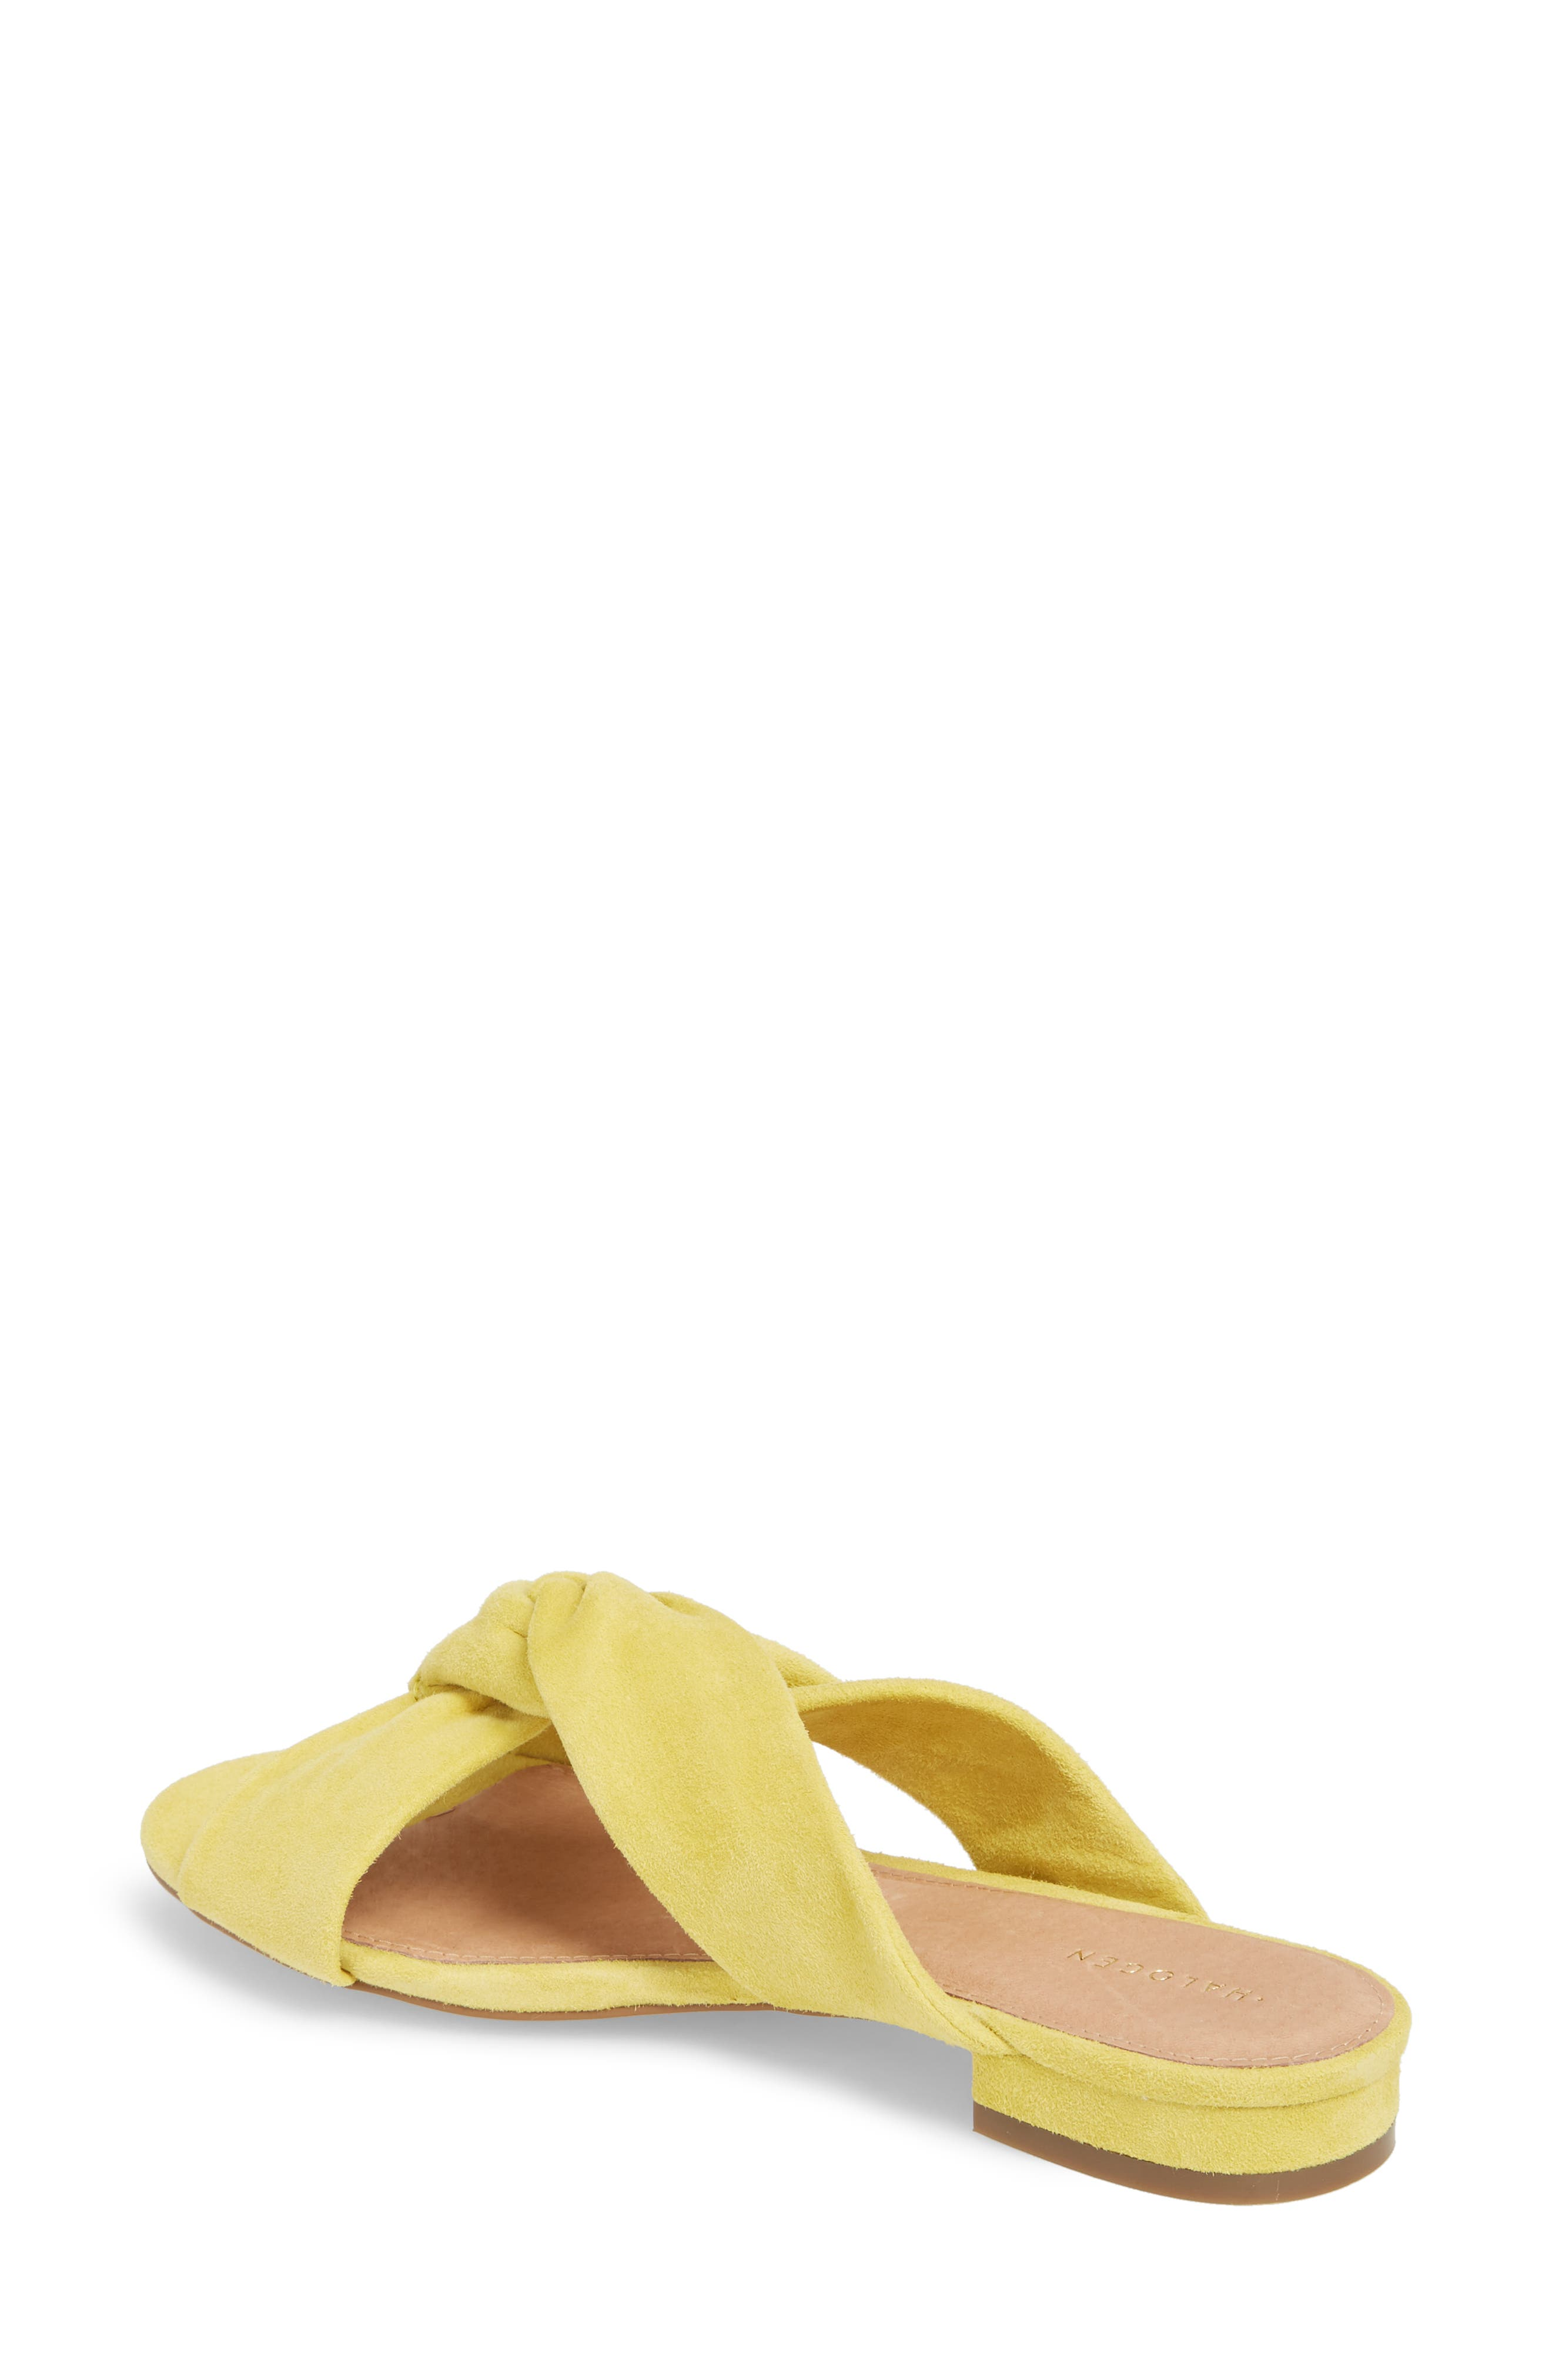 Andre Slide Sandal,                             Alternate thumbnail 2, color,                             Mustard Suede